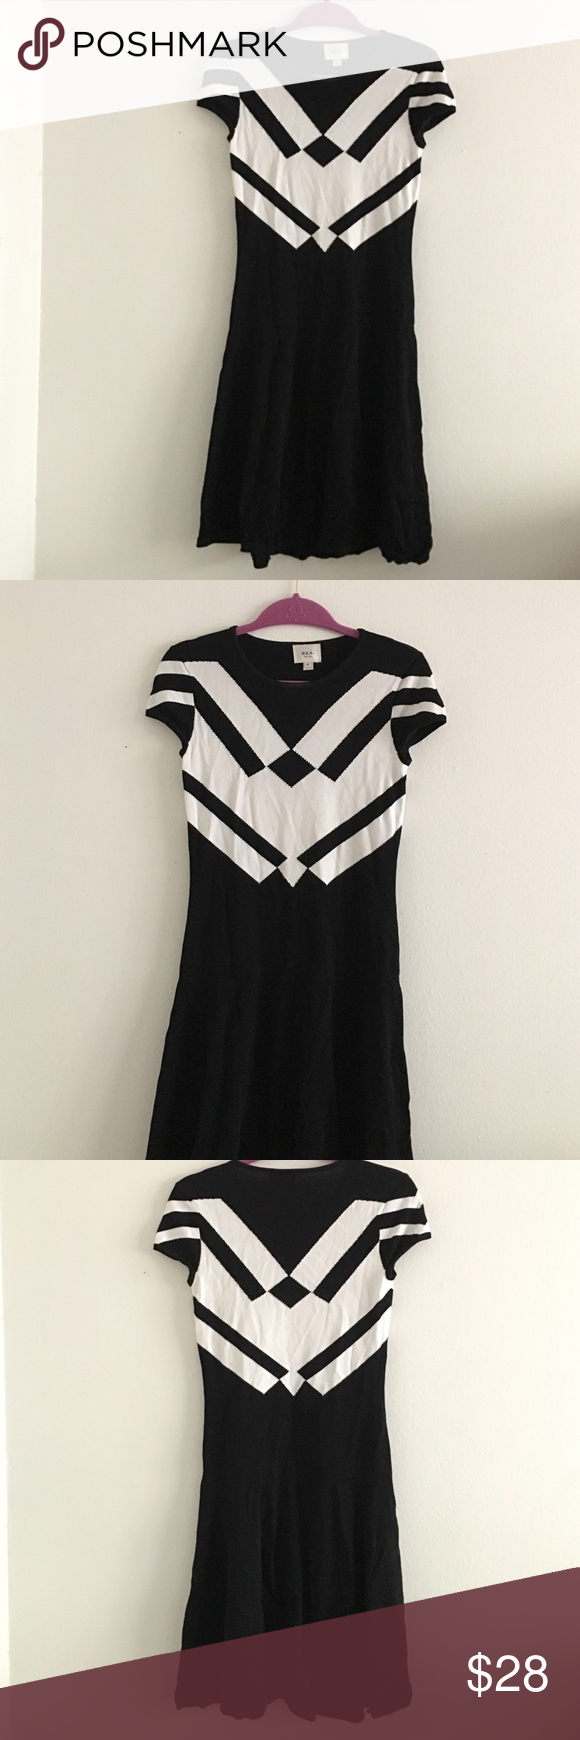 Eci Black/White Dress Classic a-line dress by Eci. It's perfect for work but can also transition to night. Fun and easy dress to wear in great condition. There is definitely some stretch but still true to size. ECI Dresses Mini